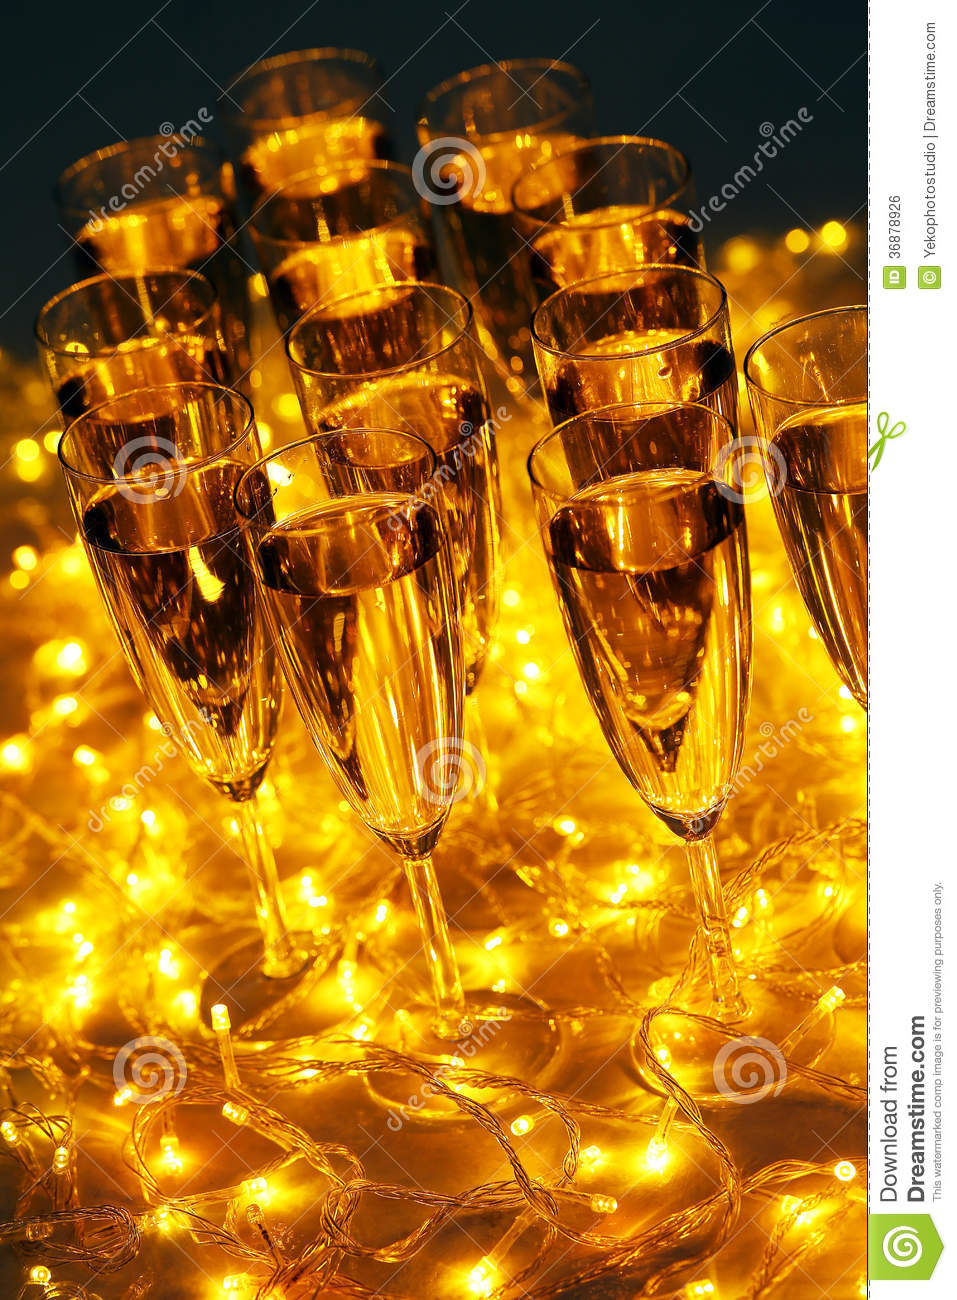 Download Vetro di champagne illustrazione di stock. Illustrazione di arte - 36878926